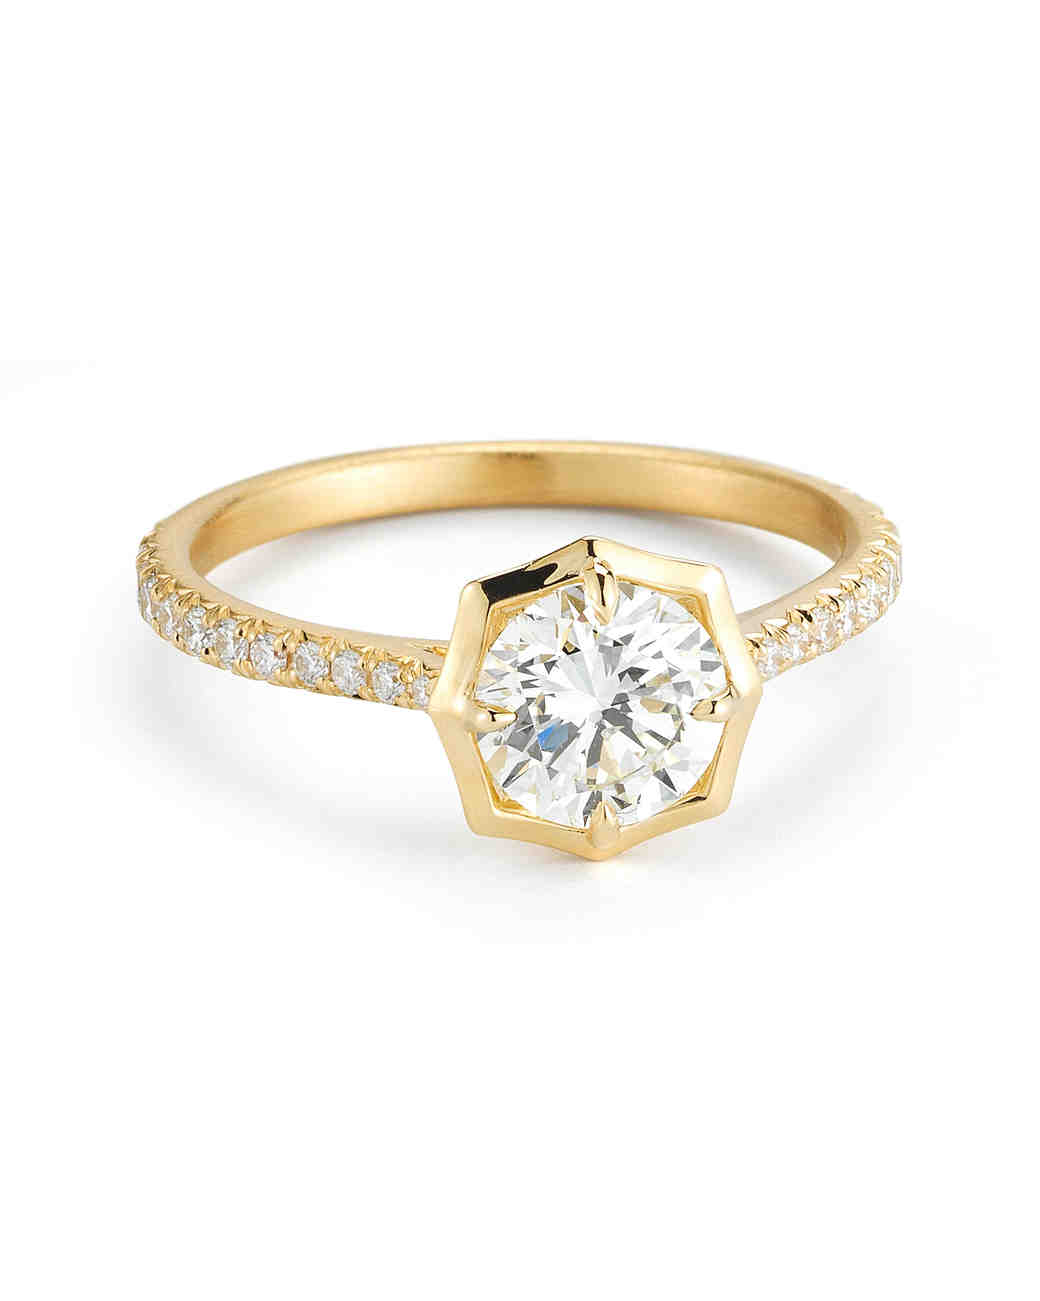 Forevermark by Jade Trau yellow gold engagement ring with pave band and round-cut diamond